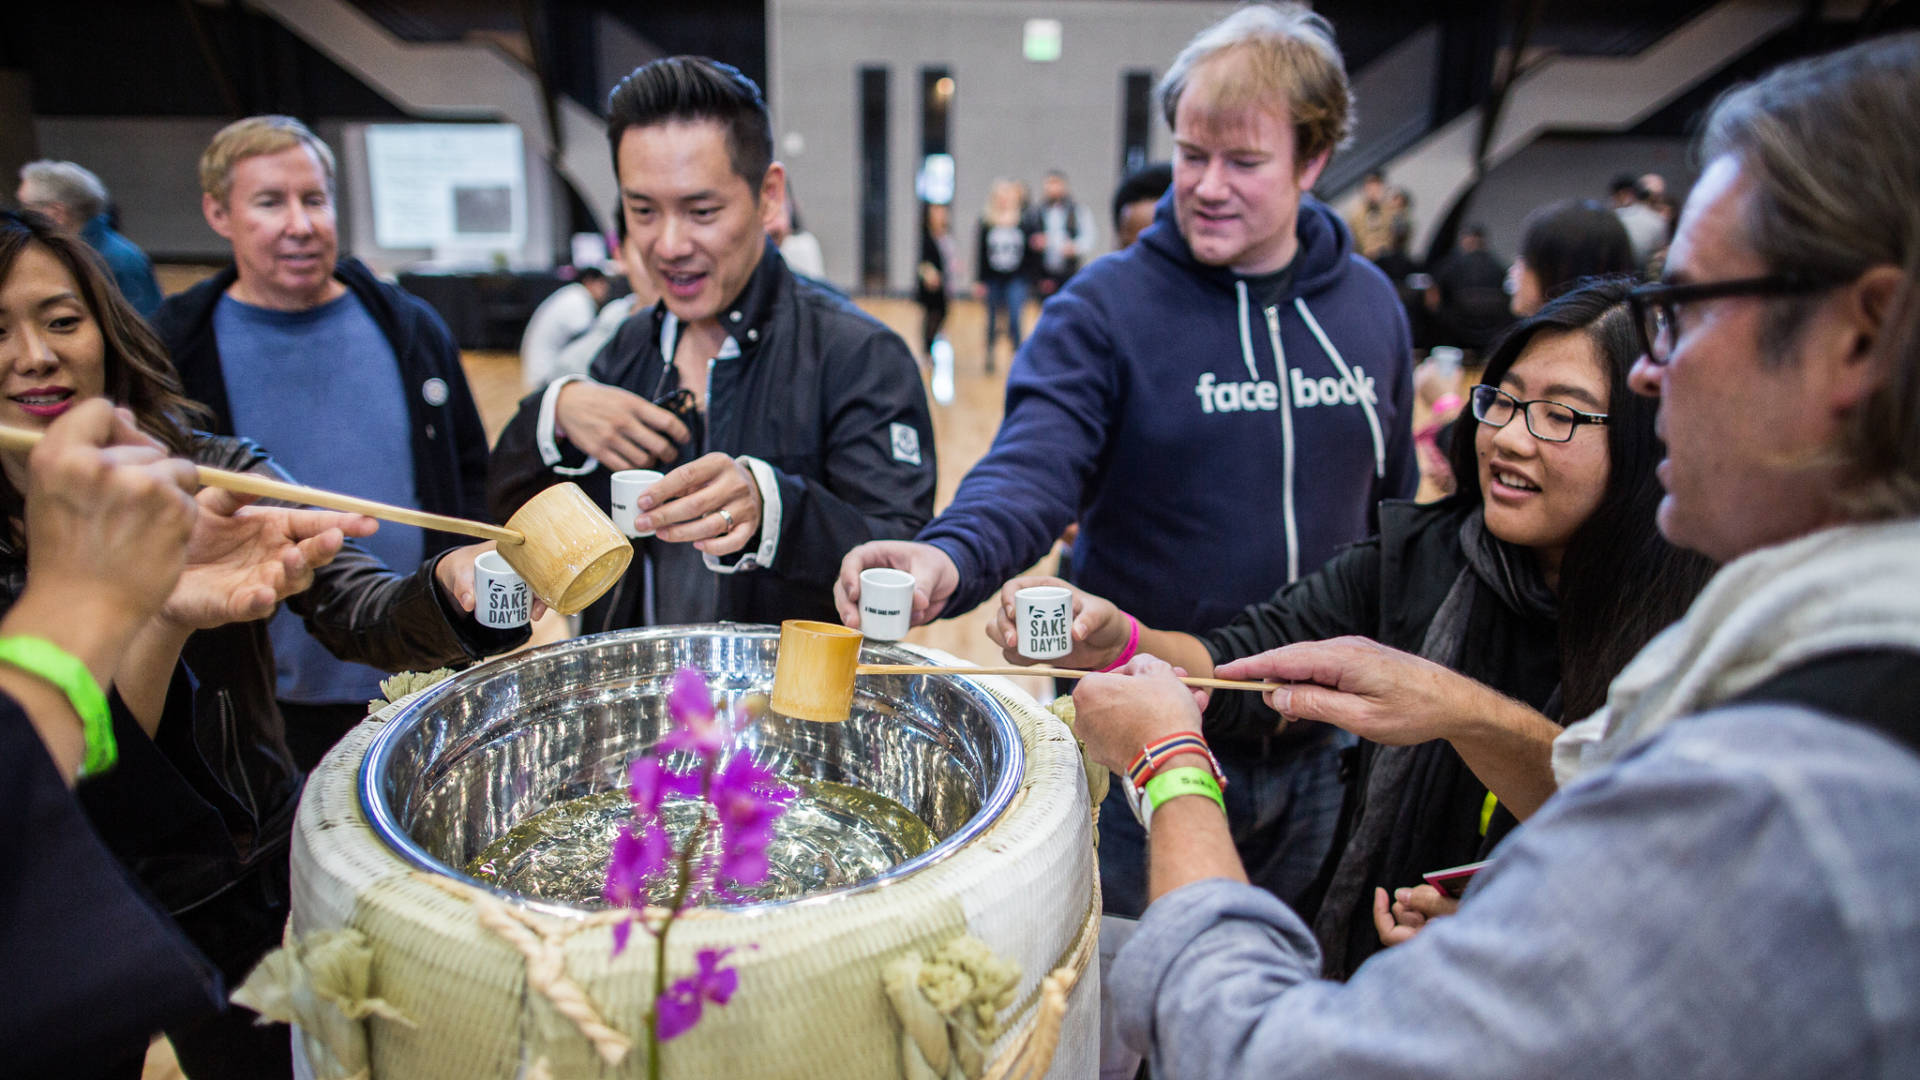 Explore and taste special sakes that aren't available in the U.S. at Sake Day.